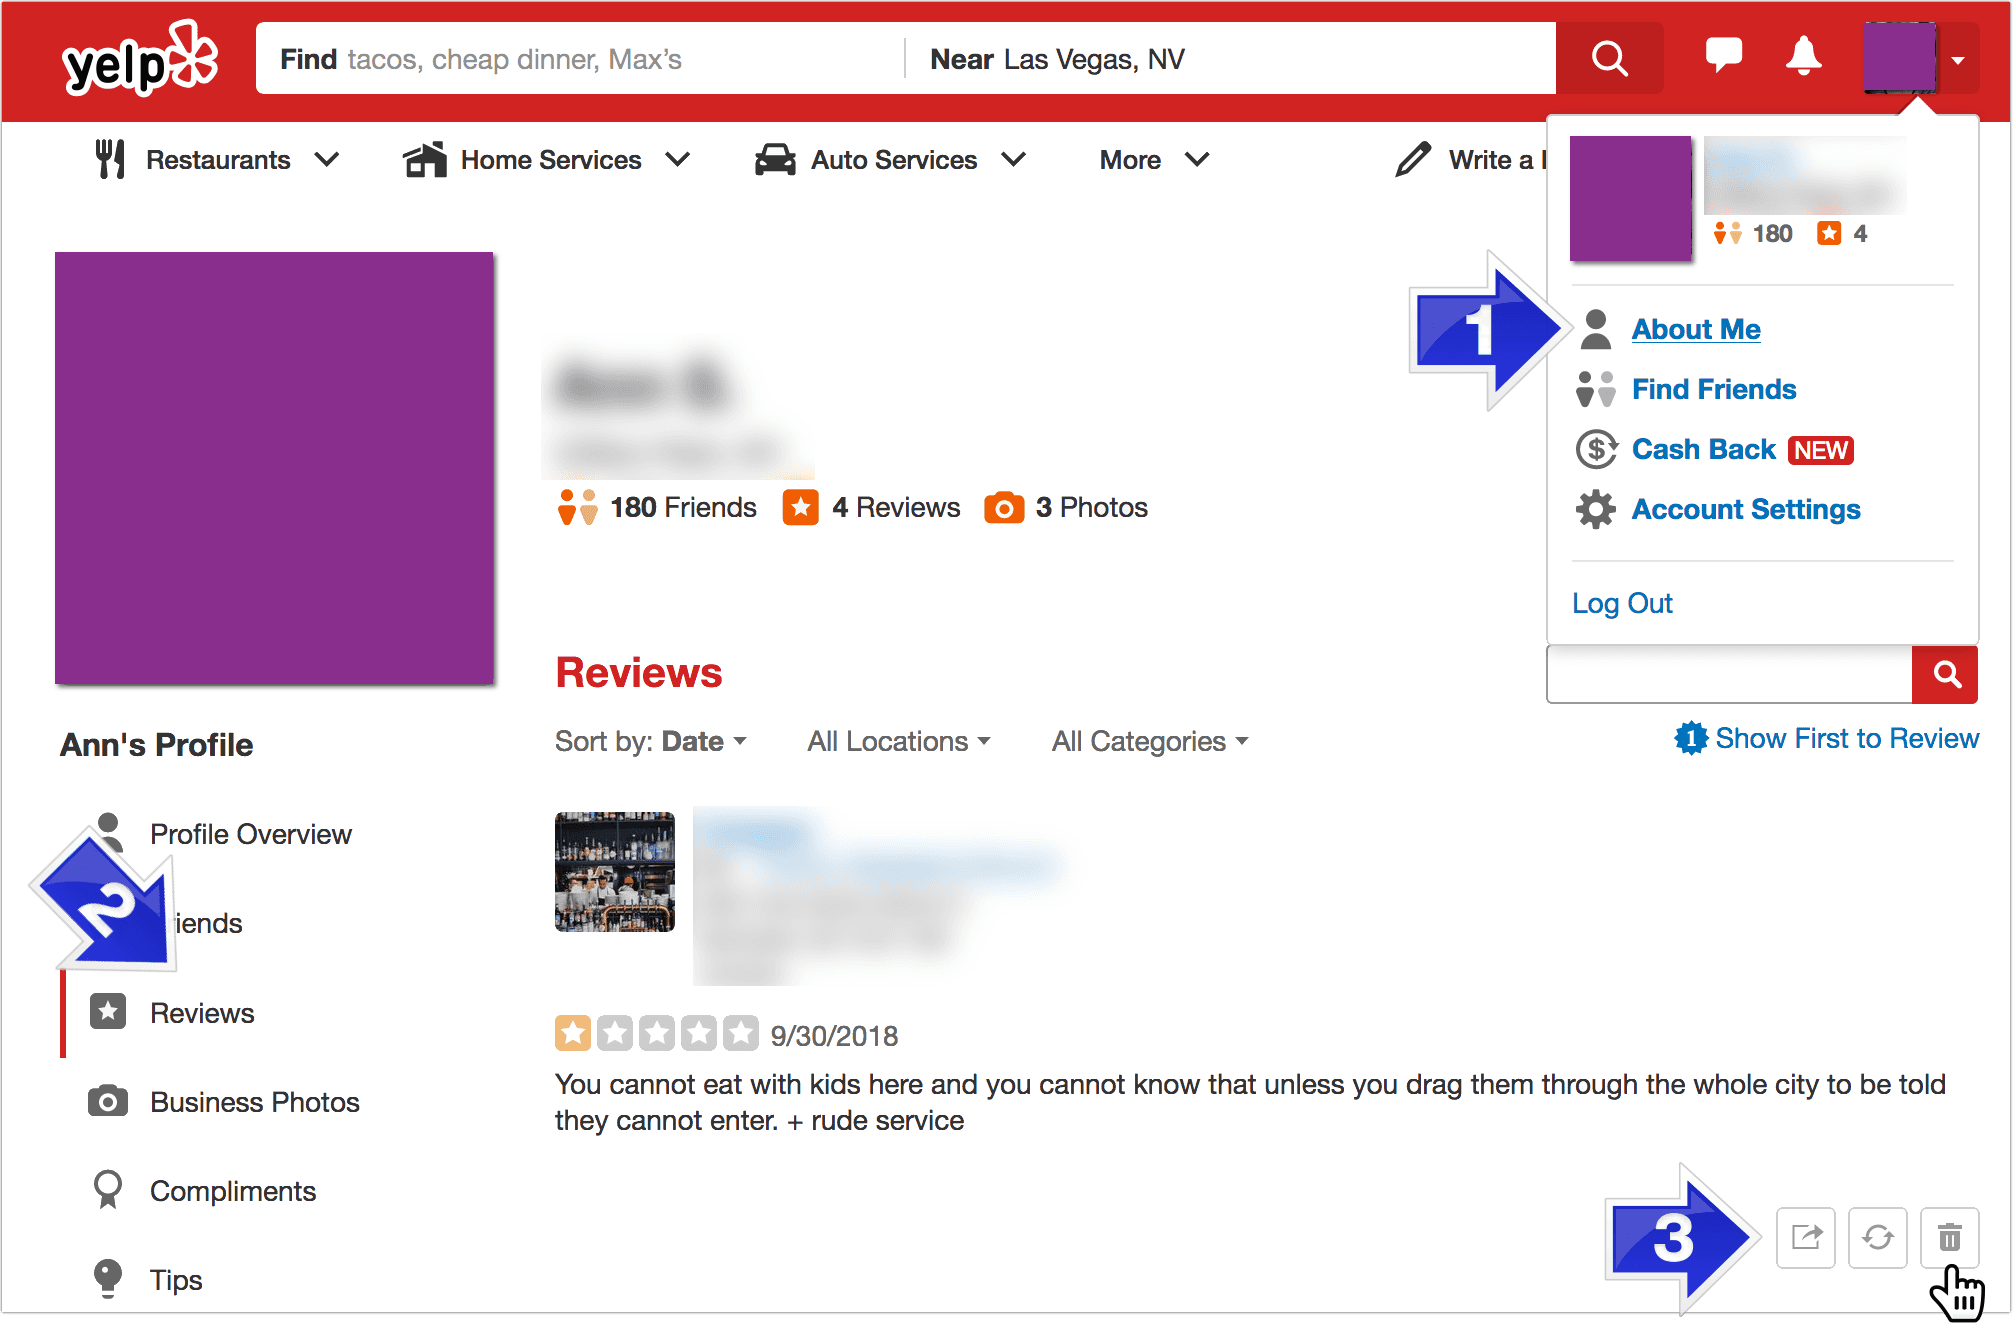 Delete your Yelp reviews prior to deleting your Yelp account